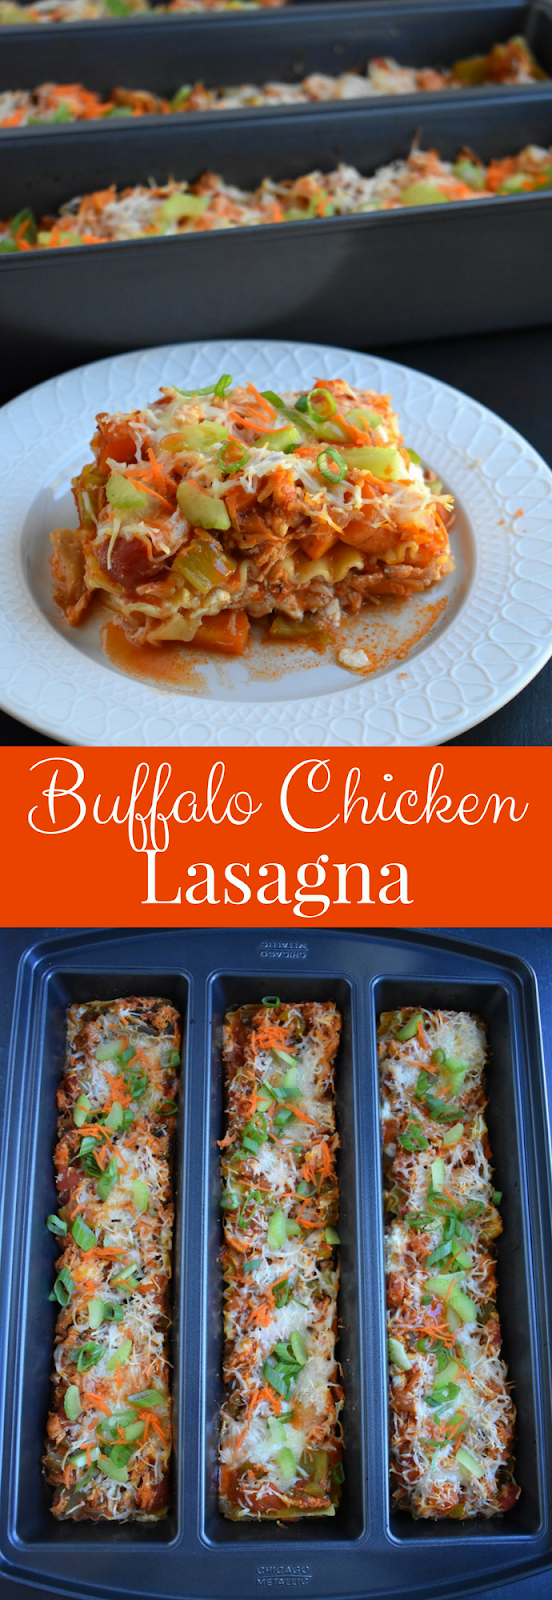 Buffalo Chicken Lasagna is loaded with spicy buffalo flavor, shredded chicken, celery, carrots, onions and is covered in melted cheese. It is rich and creamy making it the perfect filling dinner!